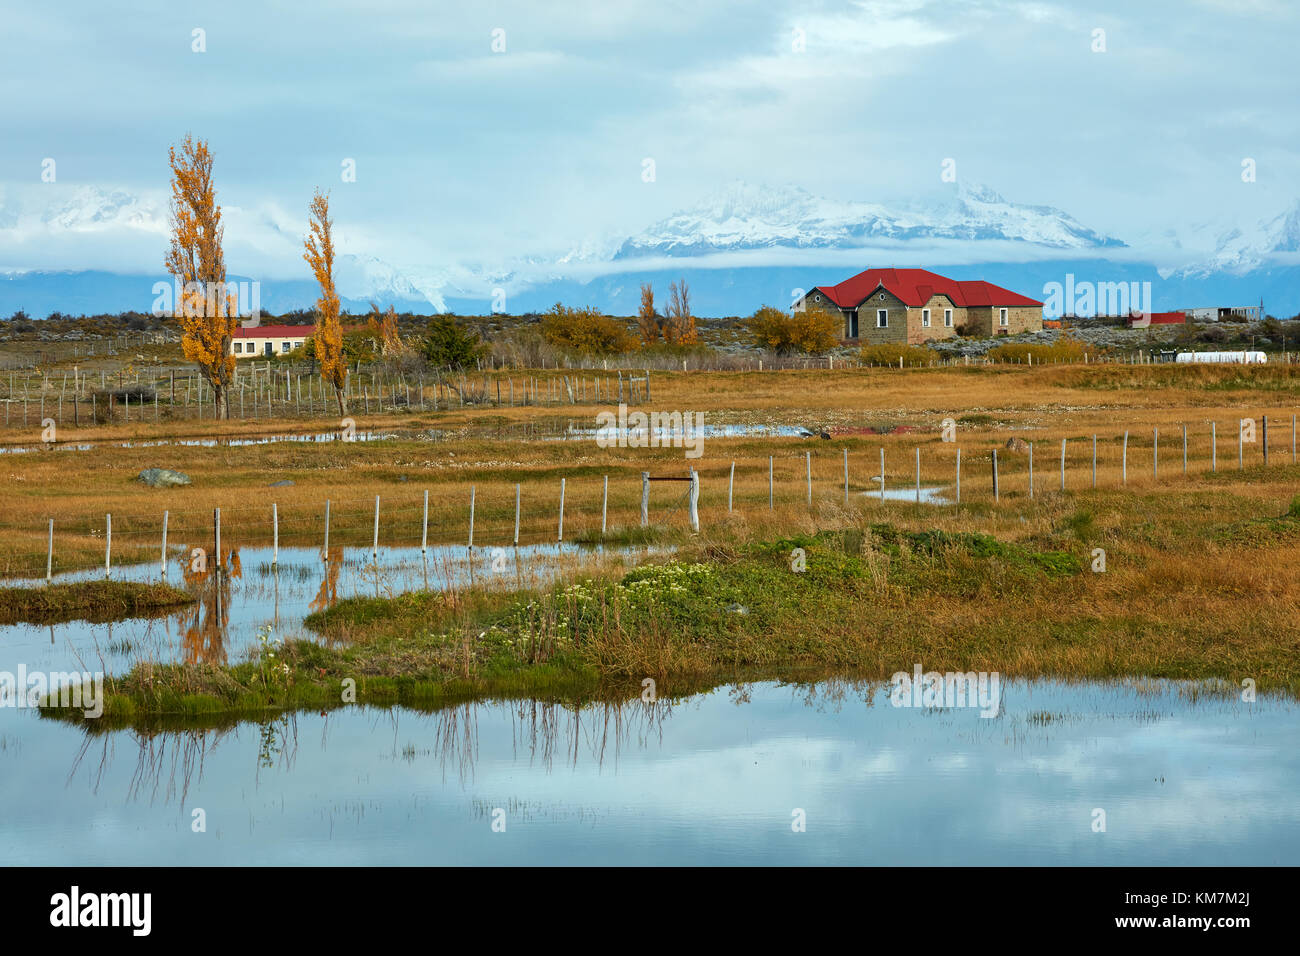 Farmhouse and mountain near El Chalten, Patagonia, Argentina, South America - Stock Image